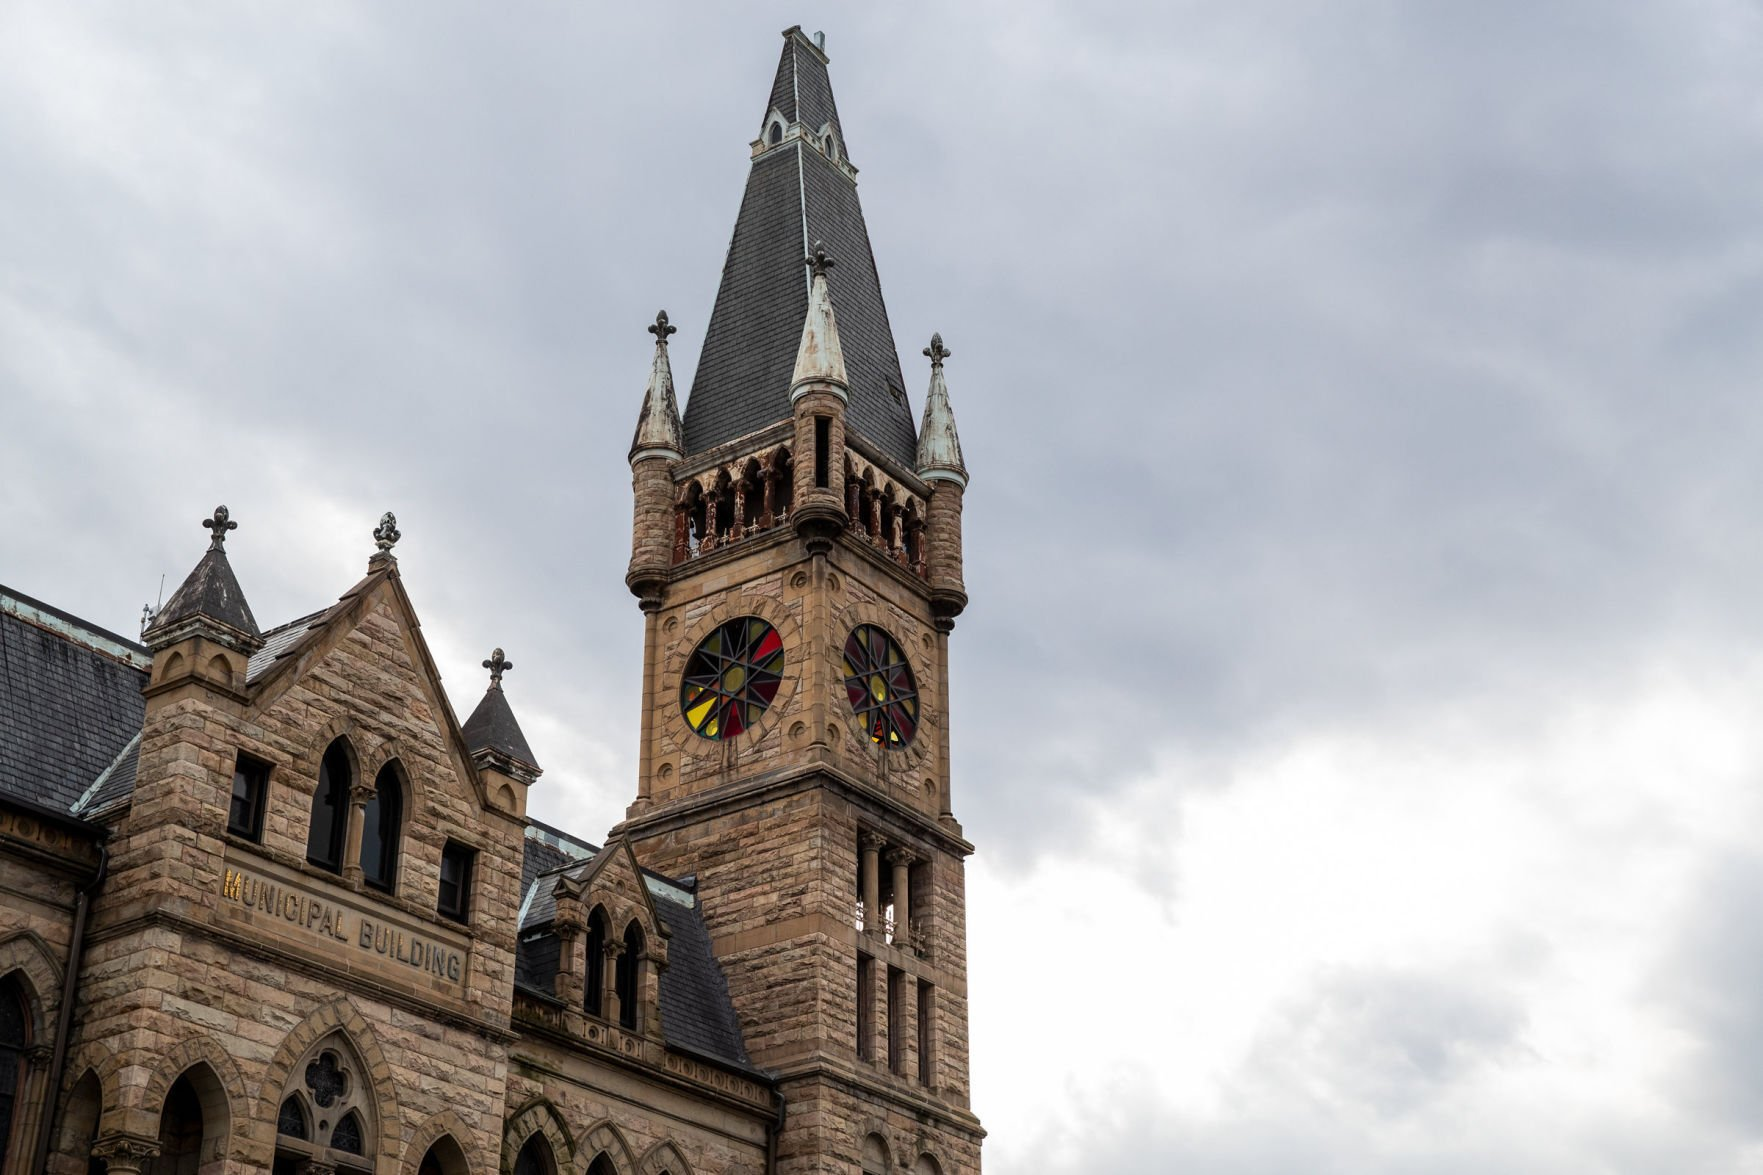 Scranton may require COVID-19 testing for city employees who don't provide vaccine proof